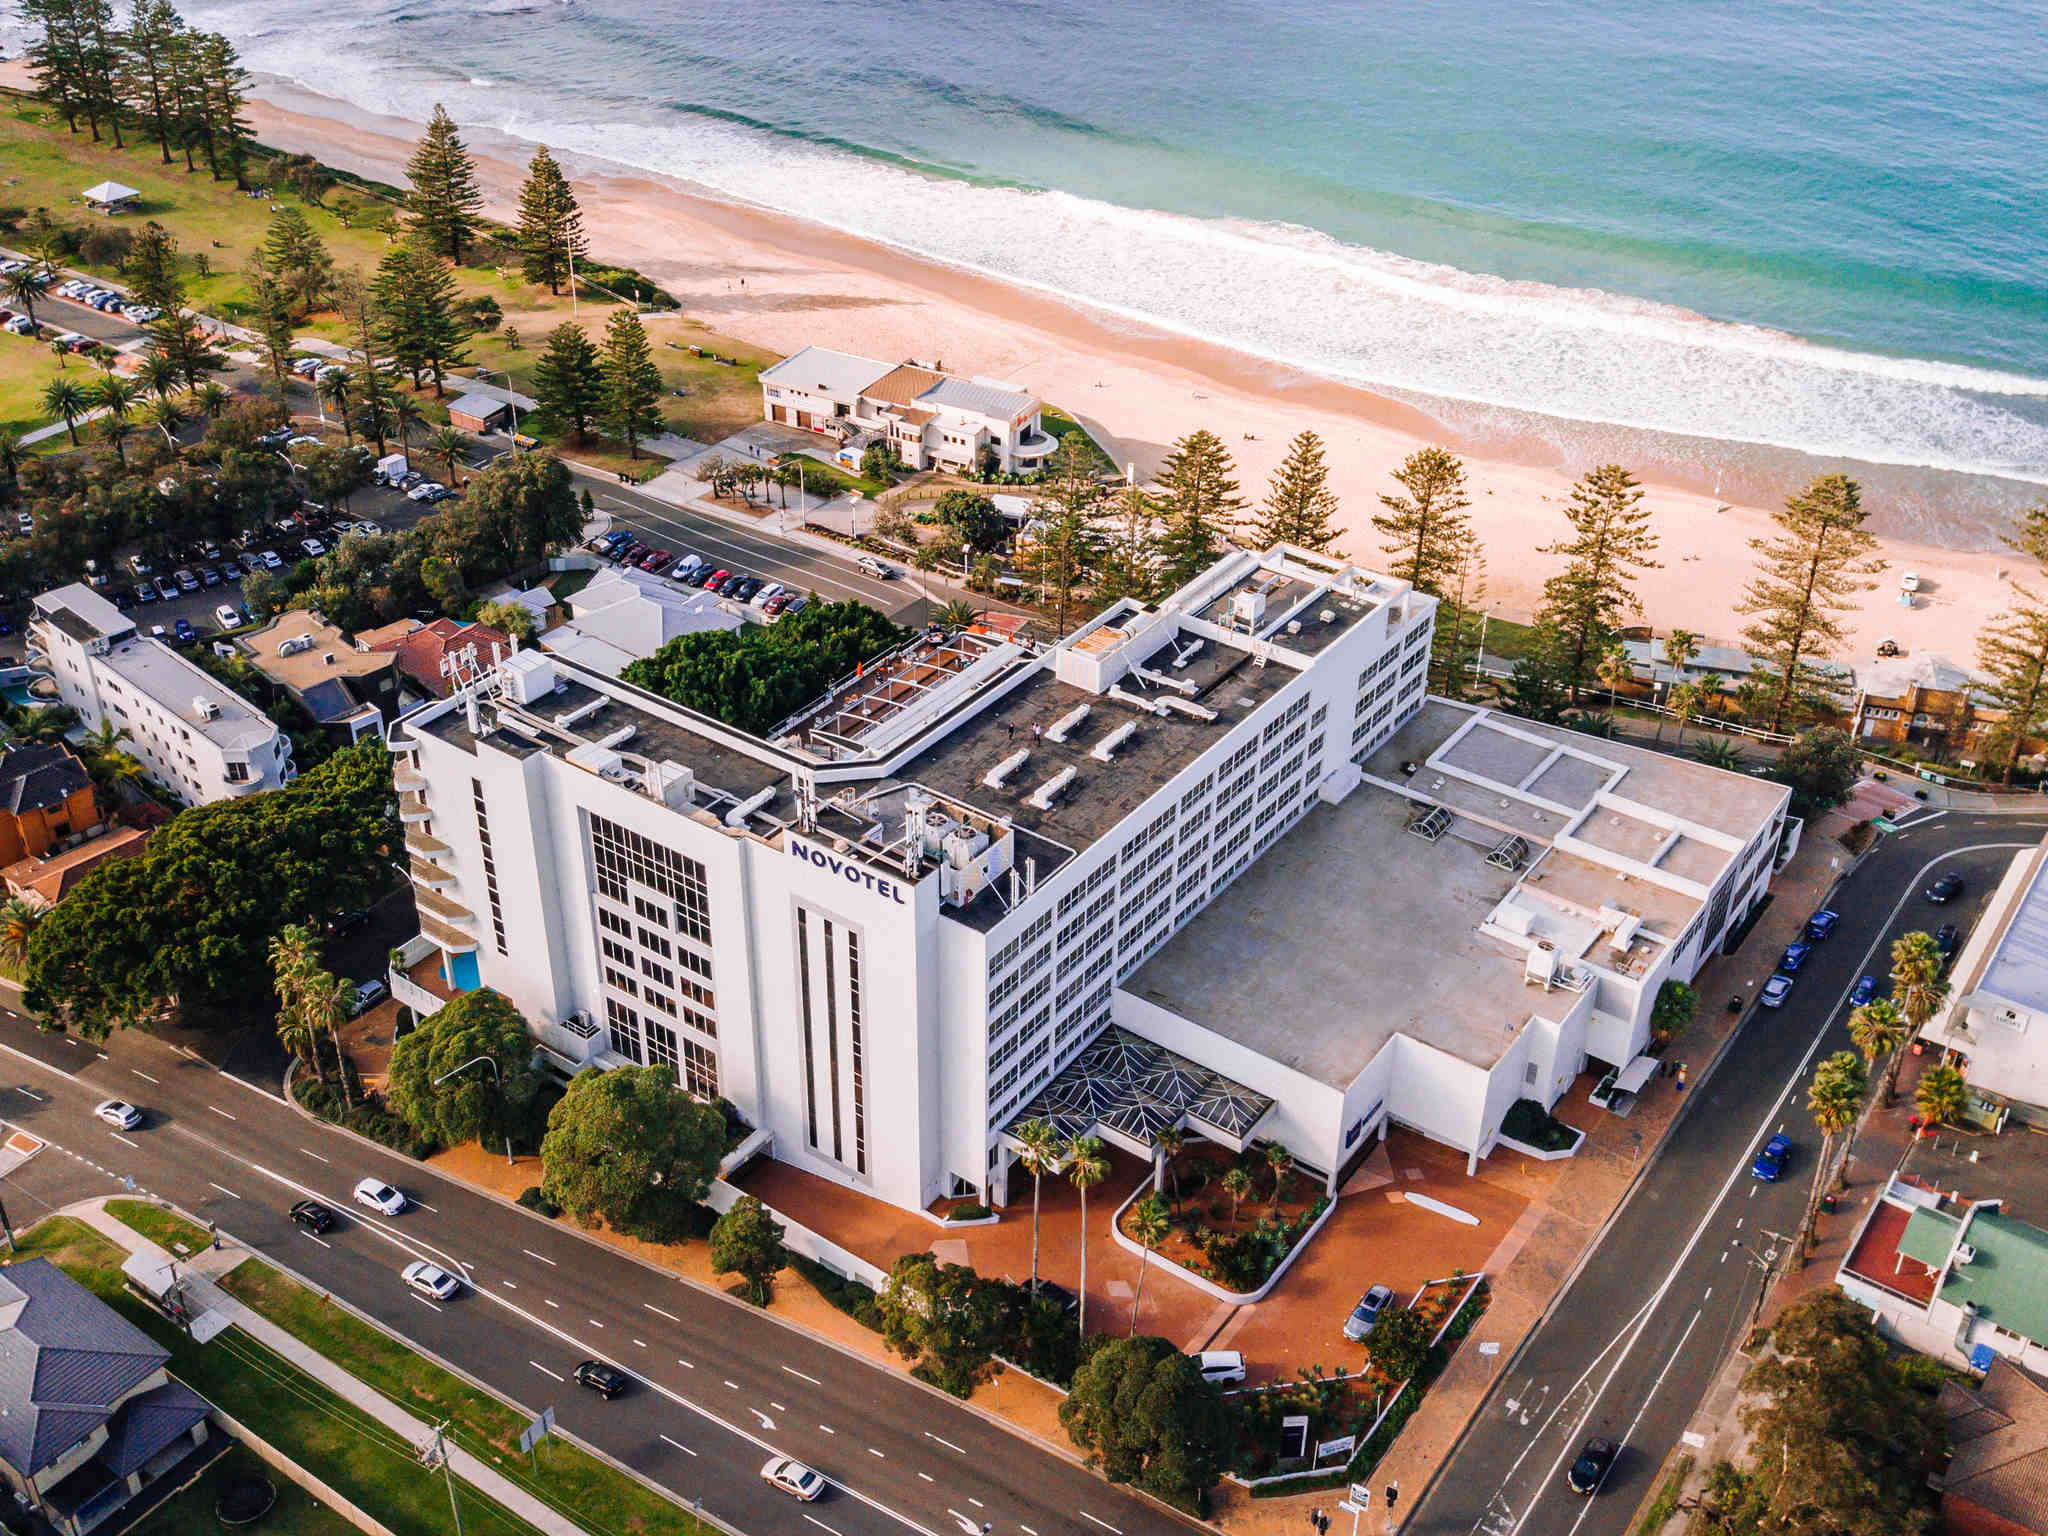 Novotel Day Spa Wollongong